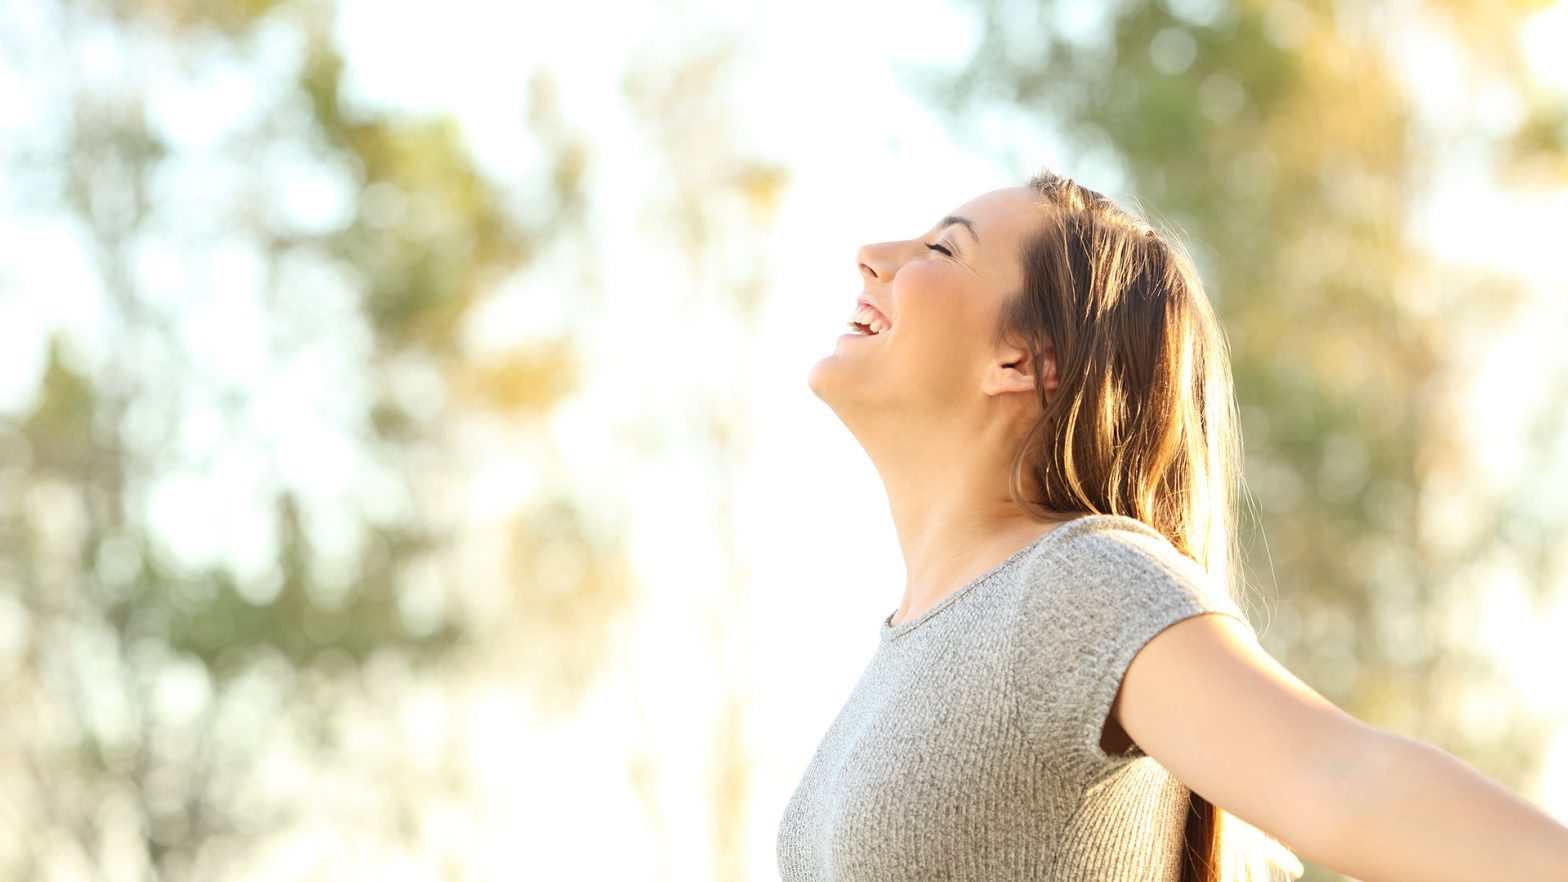 Elevating Mental Health By Taking Care Of Your Overall Health